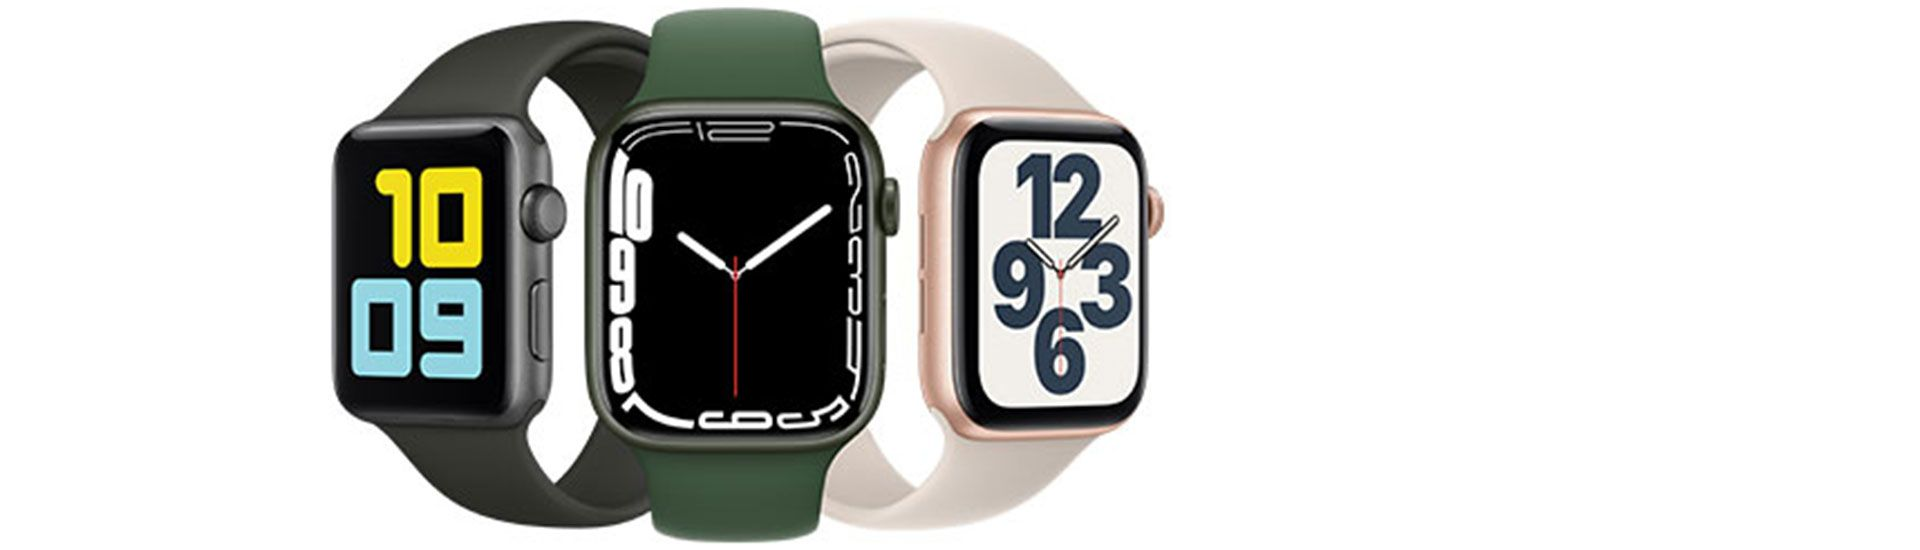 Photo of three Apple Watches with different colors or watch faces